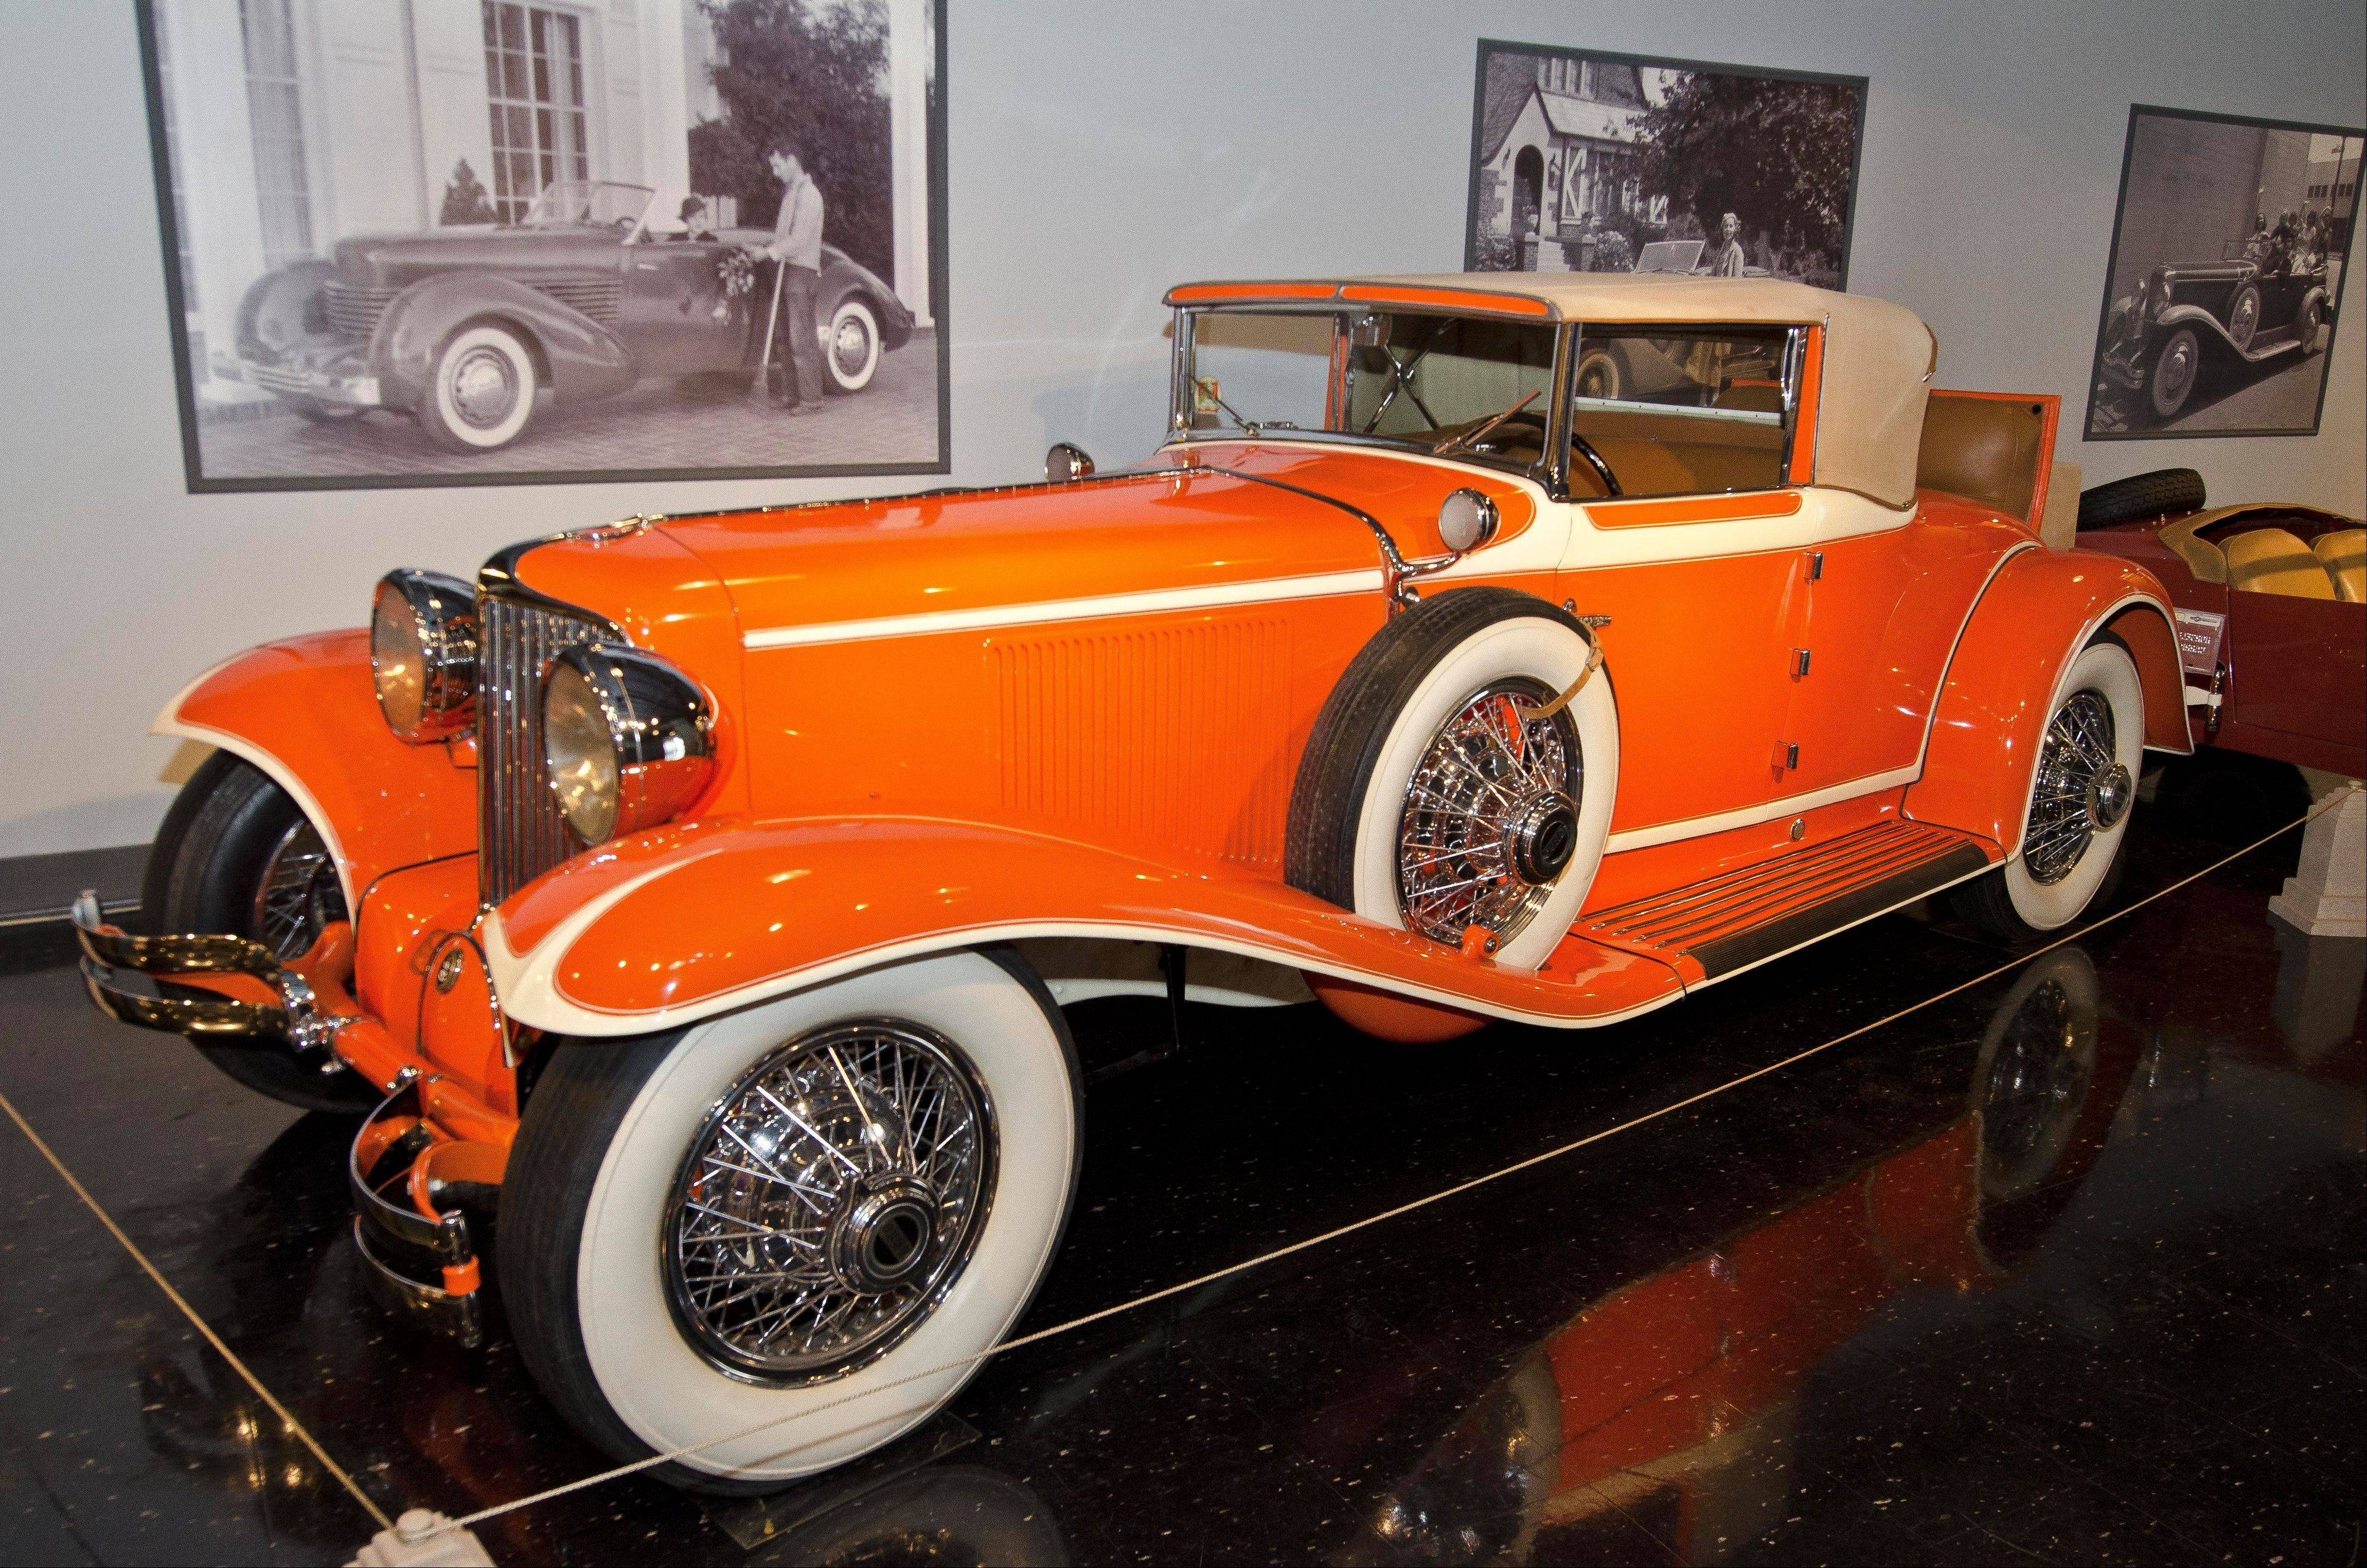 This 1930 Cord L-29 Cabriolet was at one time owned by the Frank Lloyd Wright Foundation and may have been used by the architect for a short time.